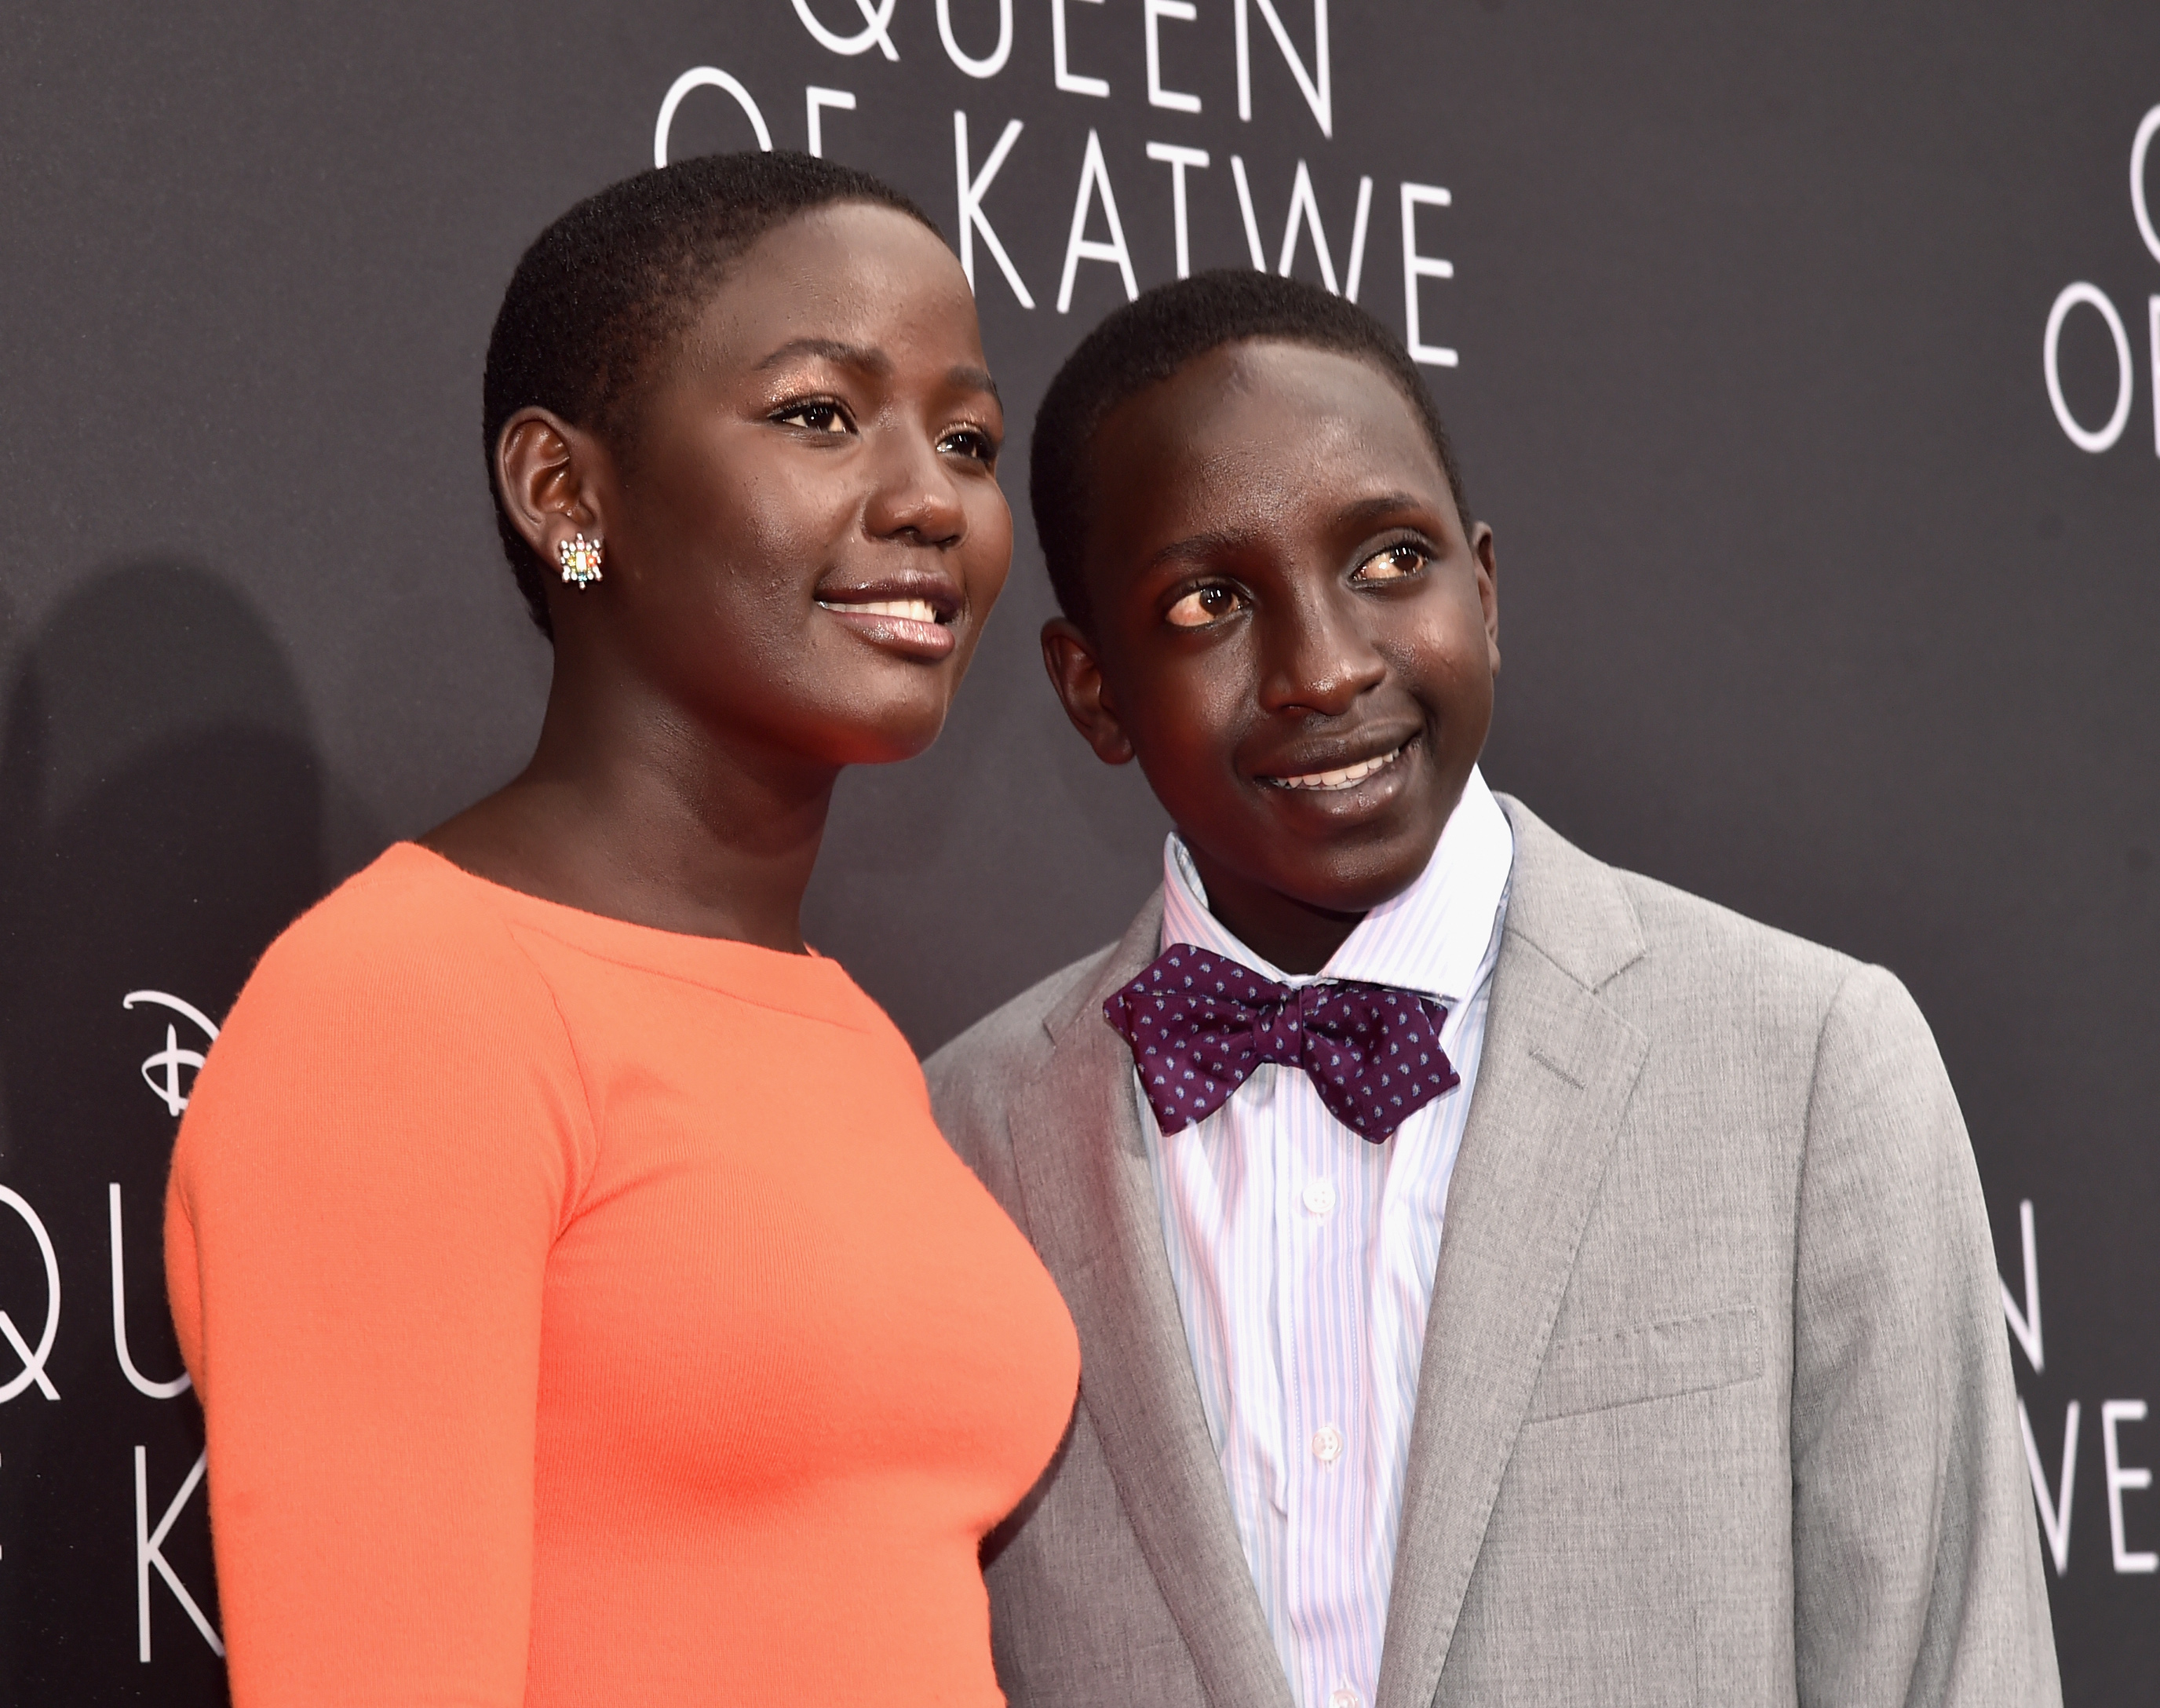 "HOLLYWOOD, CA - SEPTEMBER 20: Actors Madina Nalwanga (L) and Martin Kabanza arrive at the U.S. premiere of Disney's ""Queen of Katwe"" at the El Capitan Theatre in Hollywood. The film, starring David Oyelowo, Oscar winner Lupita Nyong'o and newcomer Madina Nalwanga, is directed by Mira Nair and opens in U.S. theaters in limited release on September 23, expanding wide September 30, 2016. On September 20, 2016 in Hollywood, California. (Photo by Alberto E. Rodriguez/Getty Images for Disney) *** Local Caption *** Madina Nalwanga; Martin Kabanza"